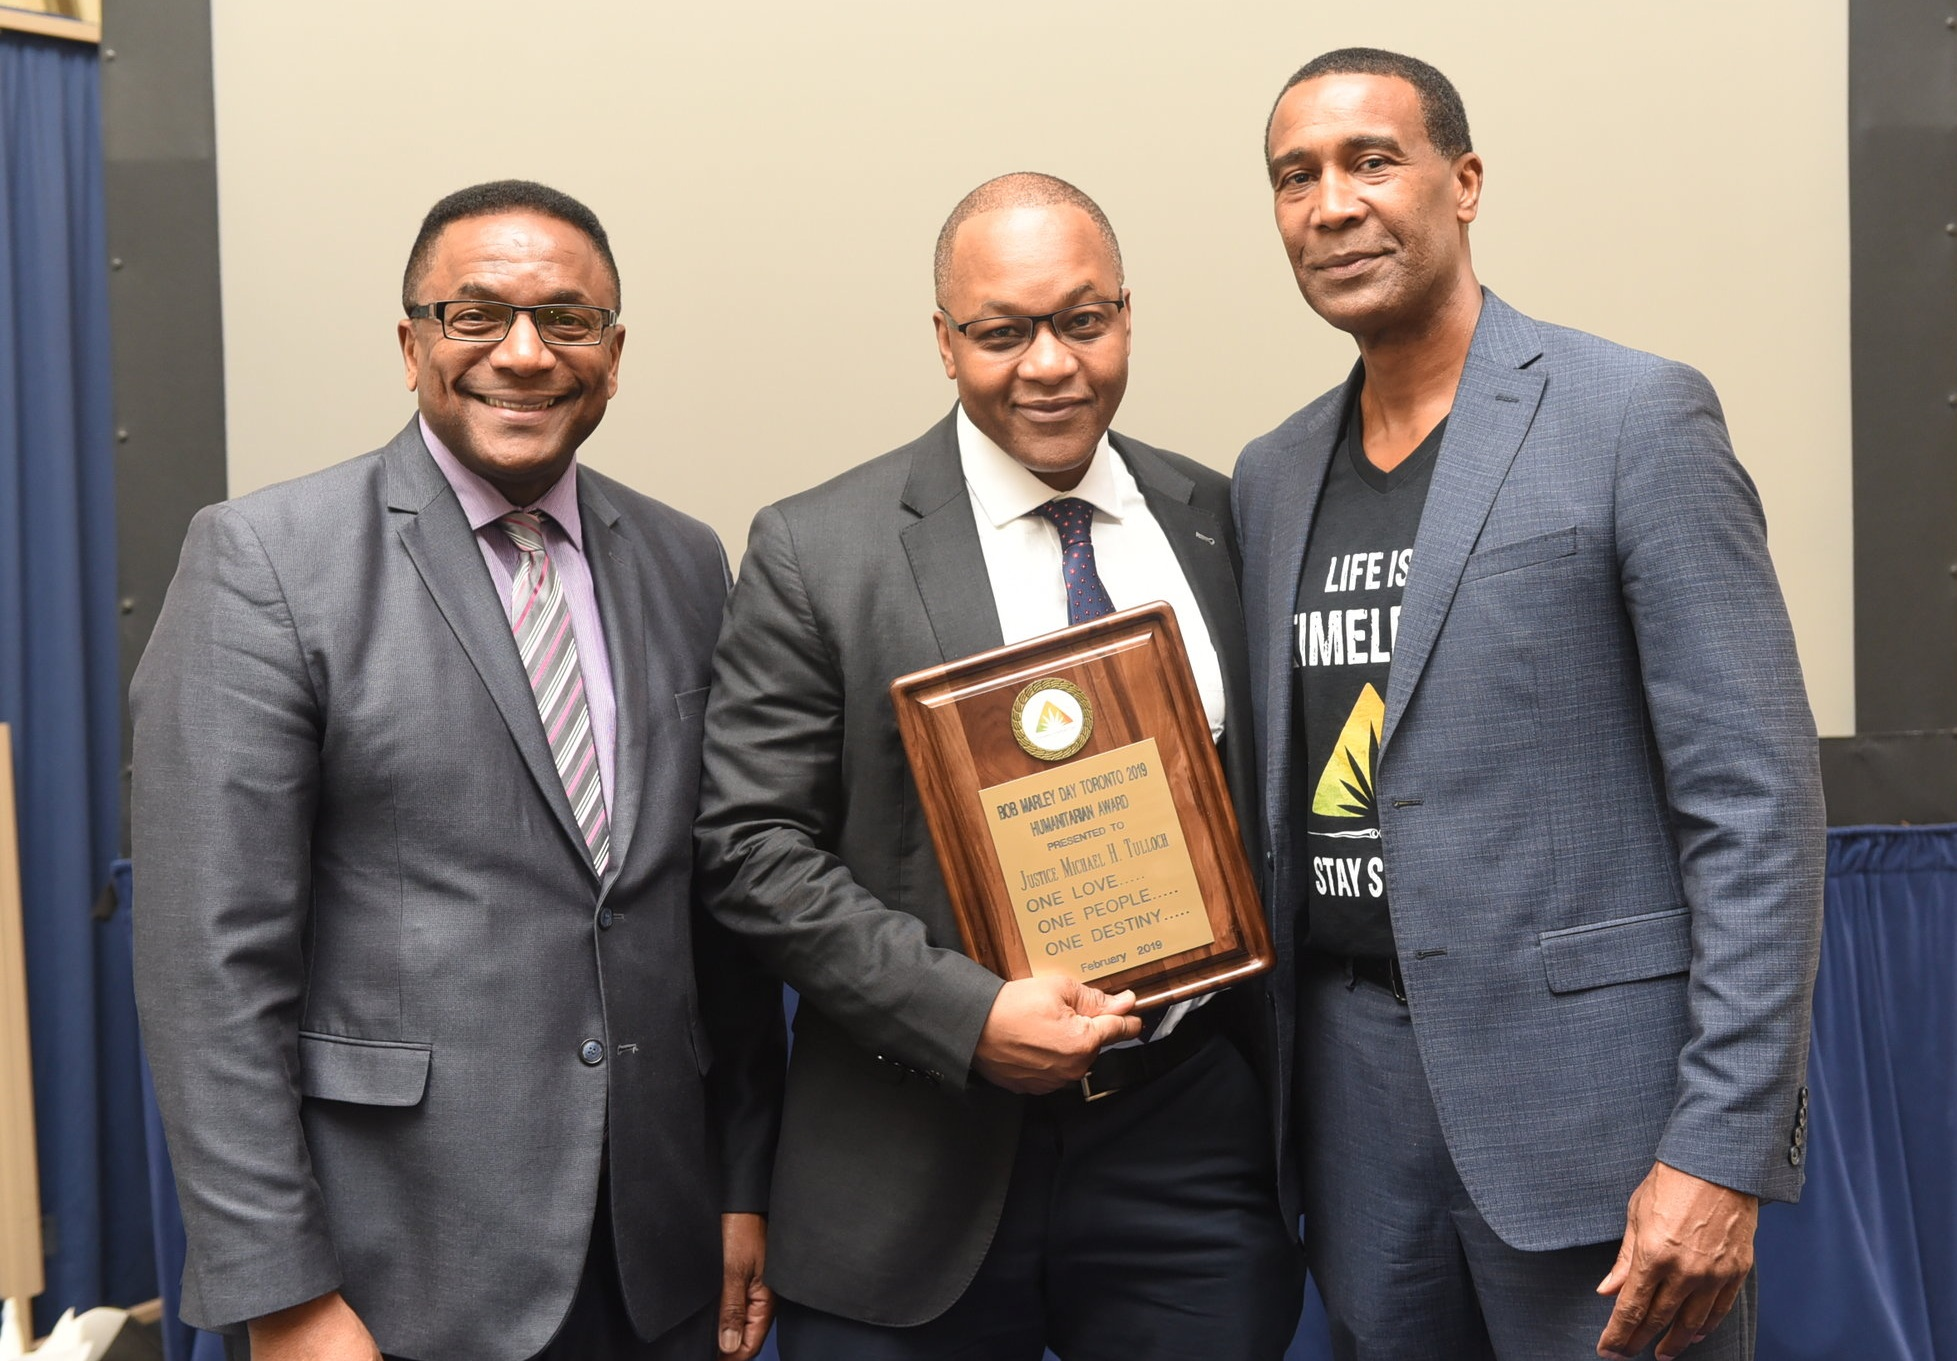 Deputy Mayor Michael Thompson (l) joined Courtney Betty (r) in presenting a Bob Marley Award to Justice Michael Tulloch